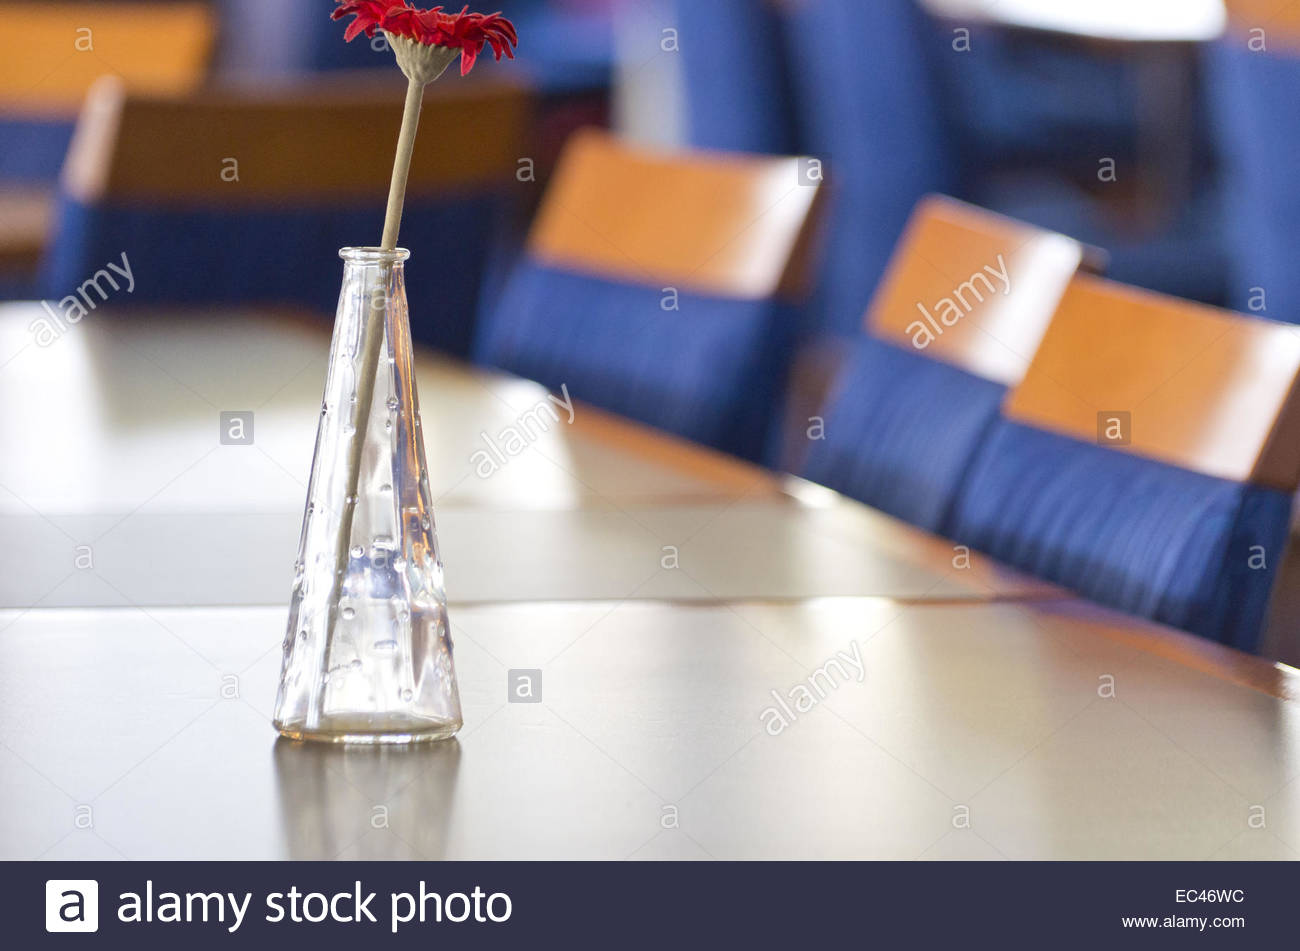 Artifical flower in a vase in a mess hall environment - Stock Image